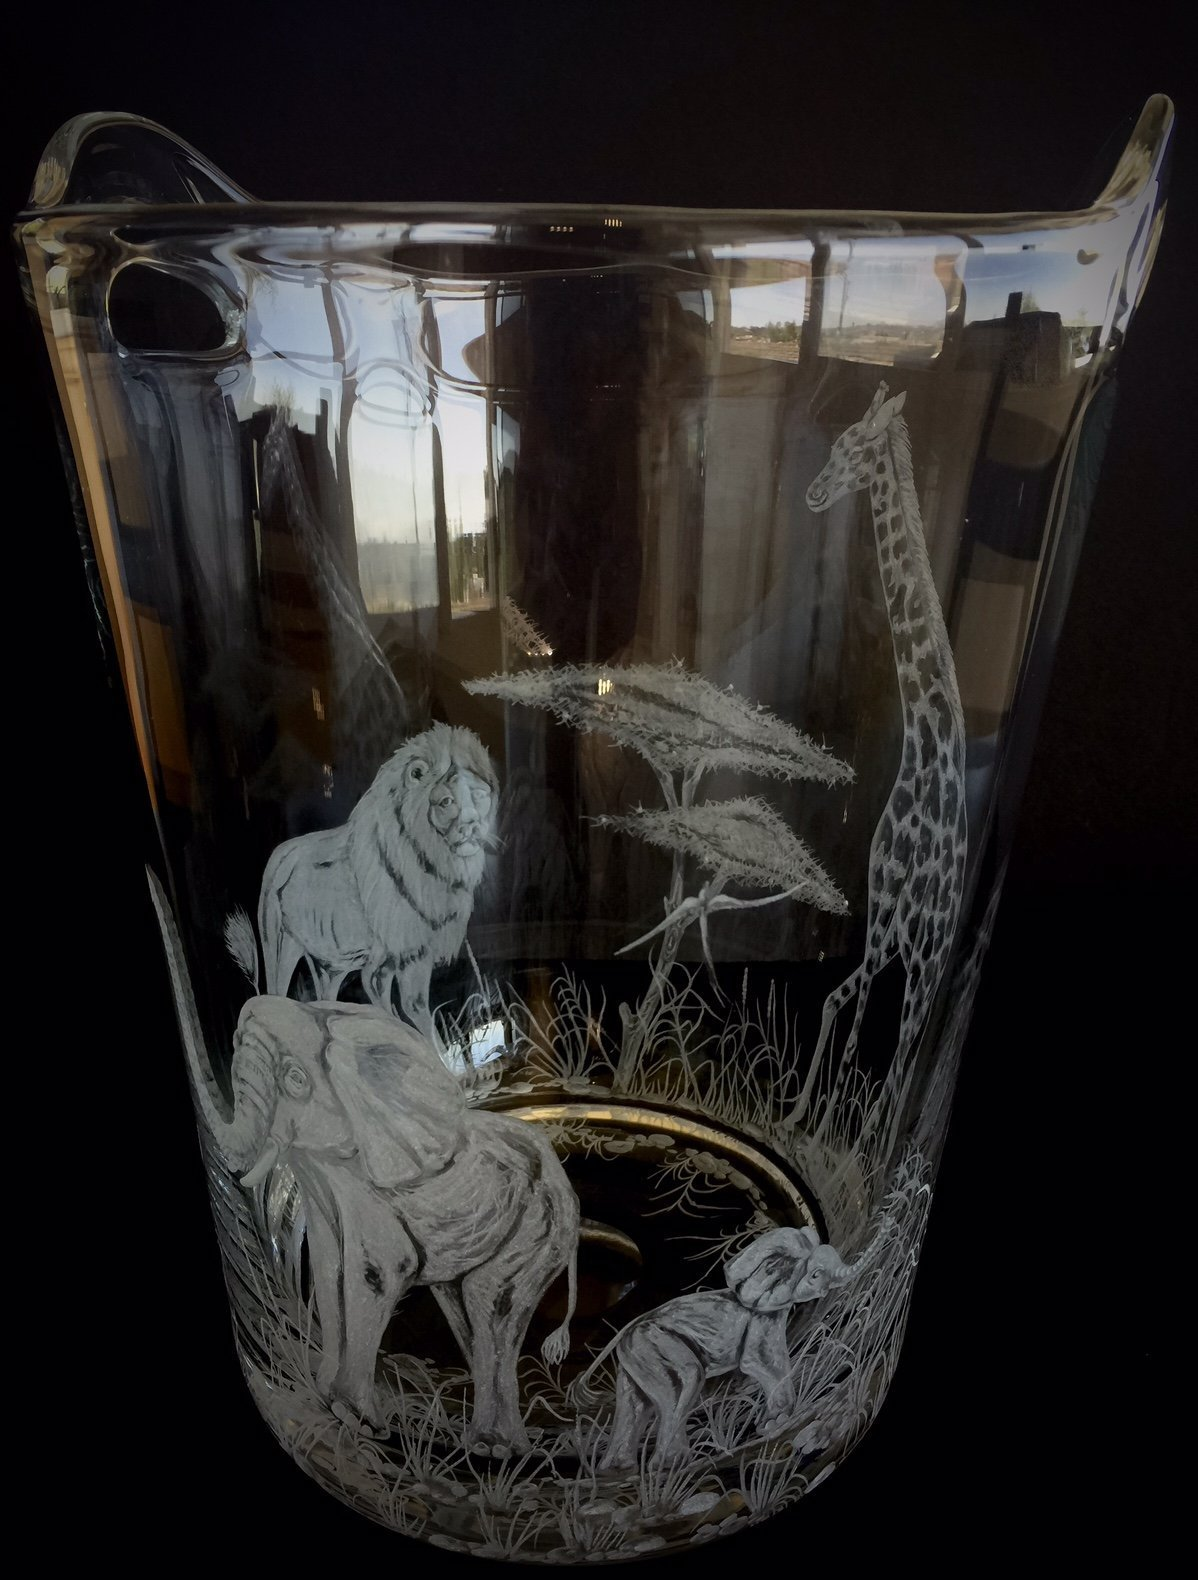 Hand Engraved Ice Bucket African Animals, Lion, Giraffe and Elephant, African Safari Scene, Engraved Bar Ware, Wedding Gifts Etched by Akoko Art Handengraved Crystal Glass (Image #2)